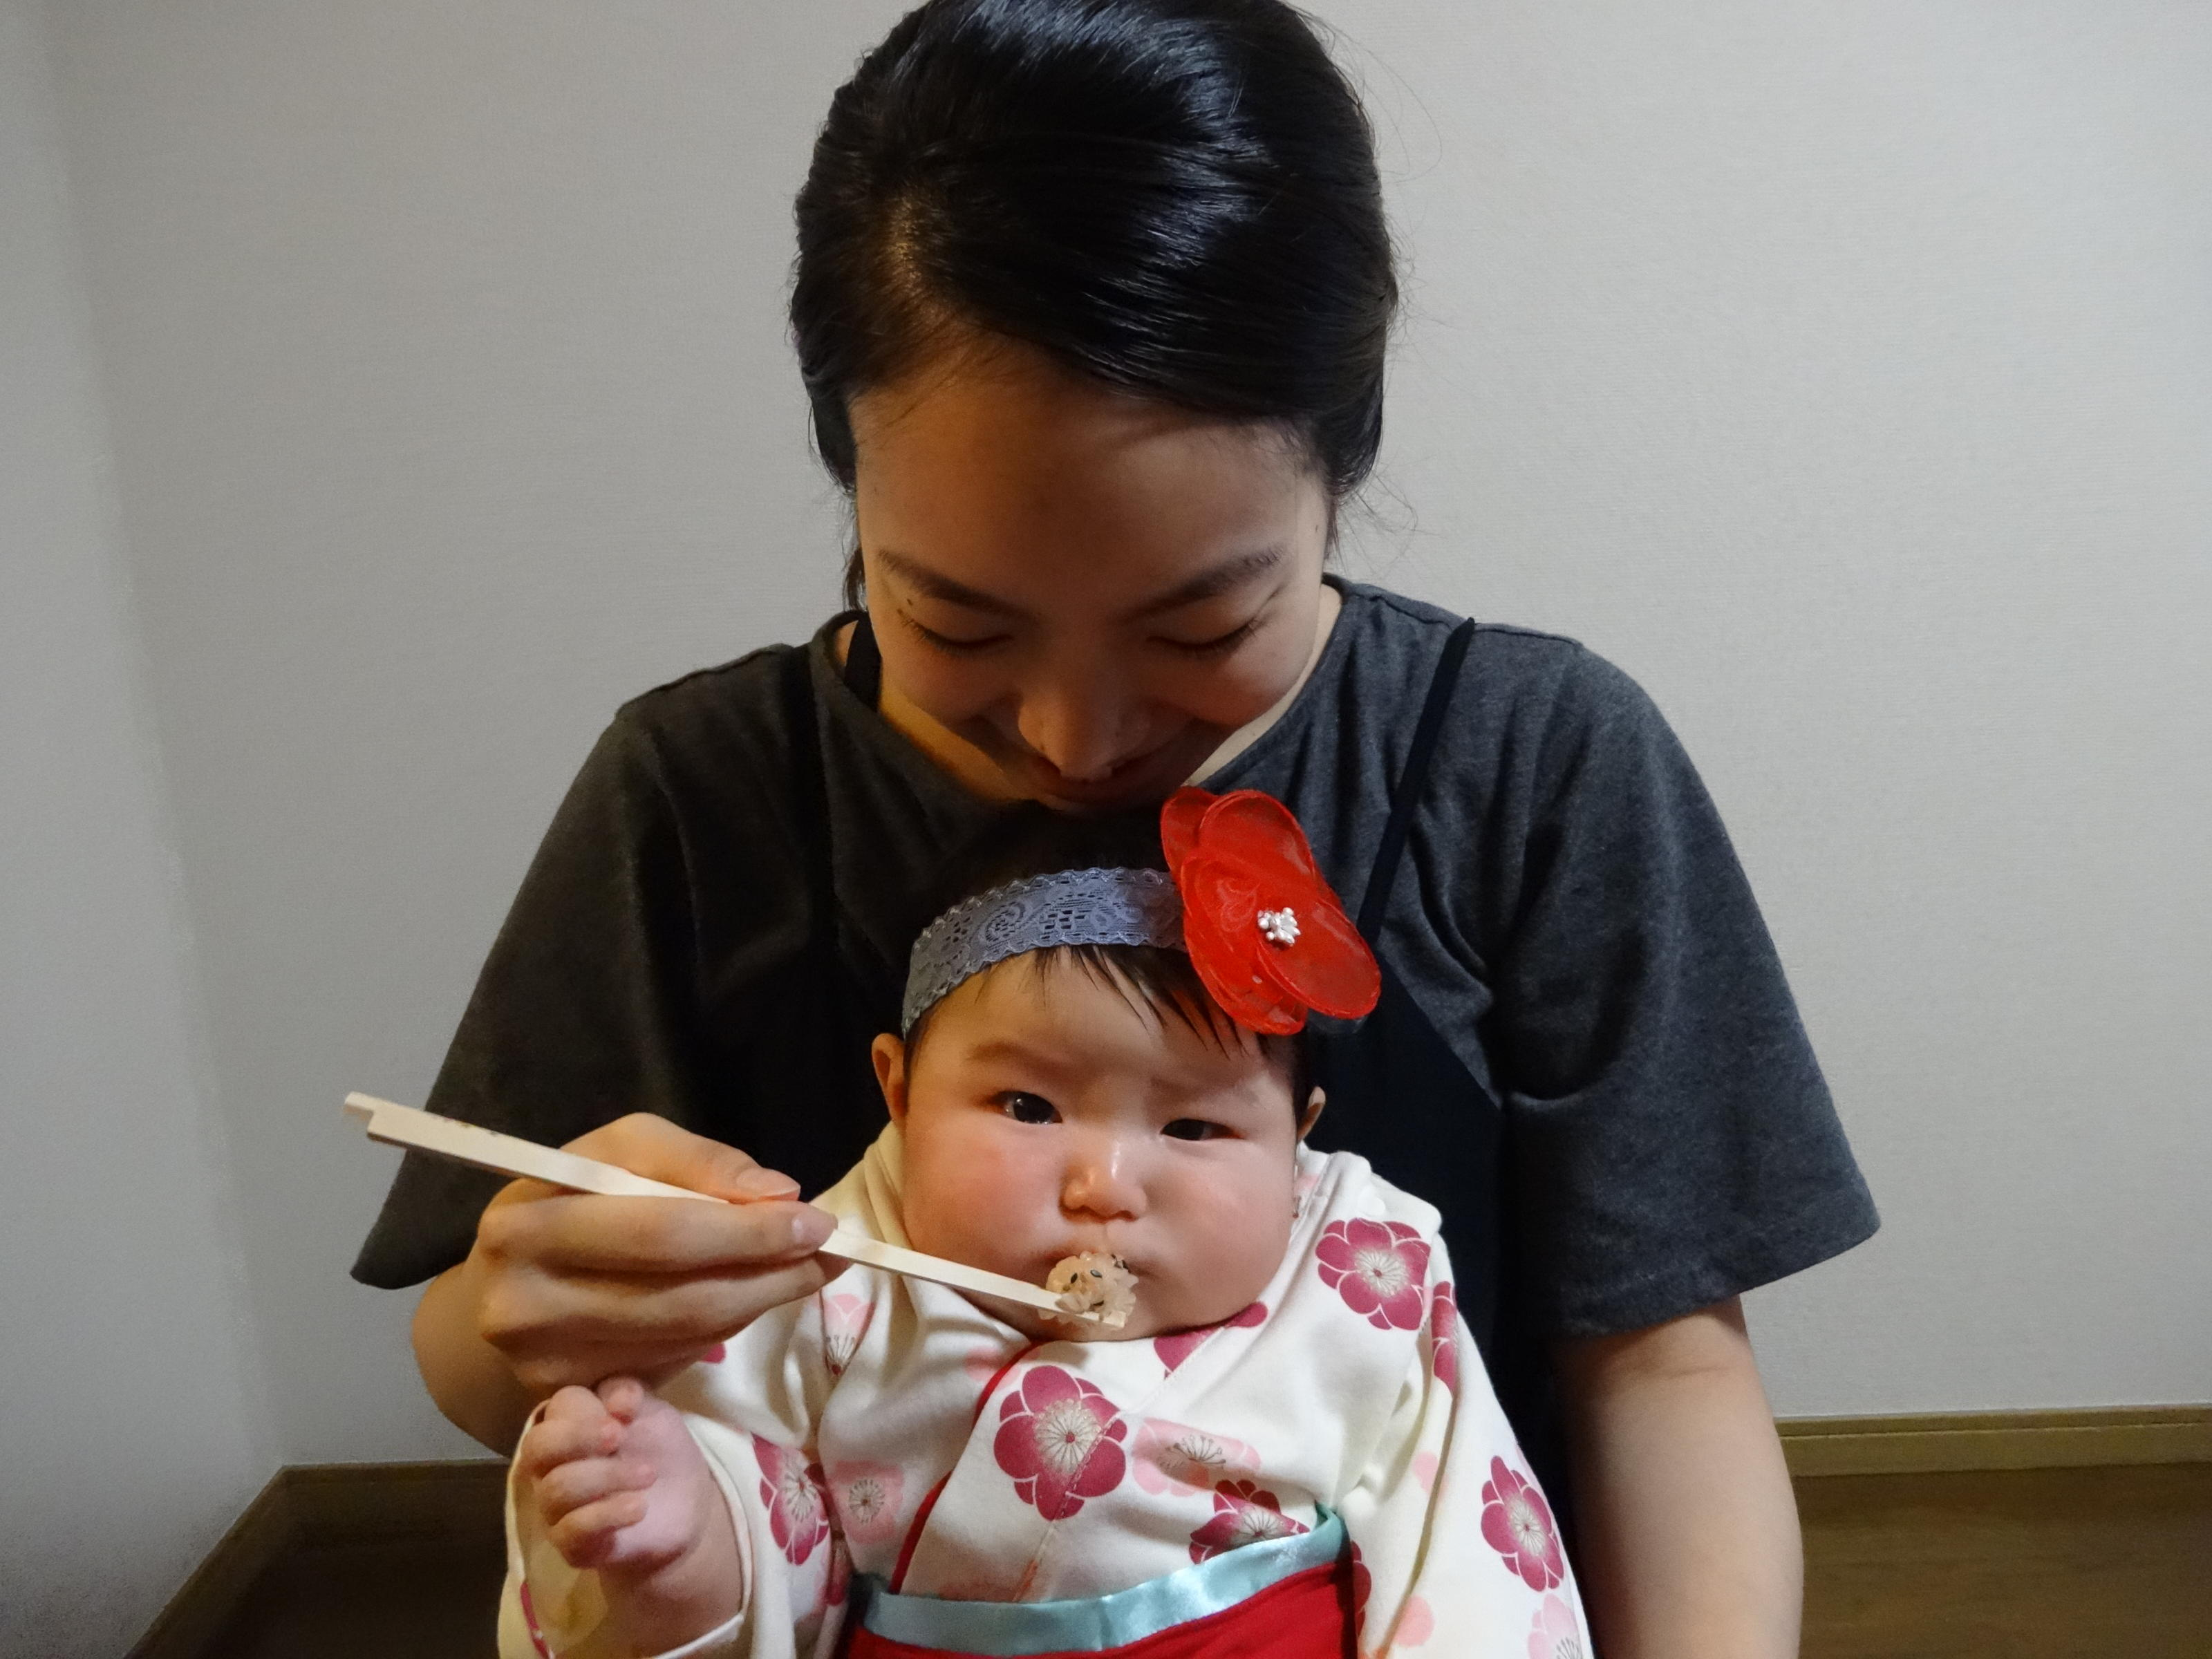 FIRST FOOD CEREMONY: In Japan, Natsumi, 29, feeds her daughter Miwa, four weeks old, during Okuizome, a first food ceremony